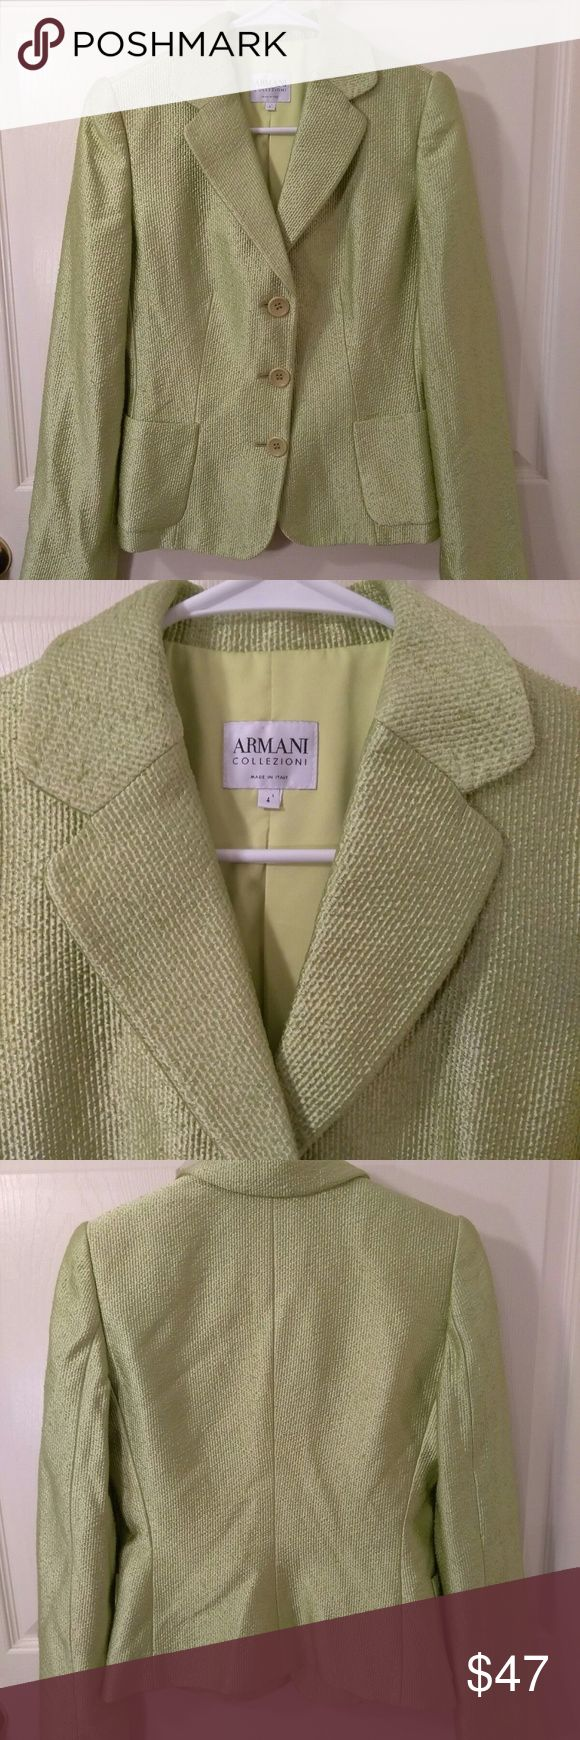 "LiMe green GIORGIO ARMANI Jacket LiMe green GIORGIO ARMANI Jacket size 38/4. GORGOUS lined jacket) Blazer Length 28"" Waist 24"" Sleeves 23"" Pit to pit 16"" Shoulders 14.5"" Smokefree petless home and ships next day . GIORGIO ARMANI Jackets & Coats"